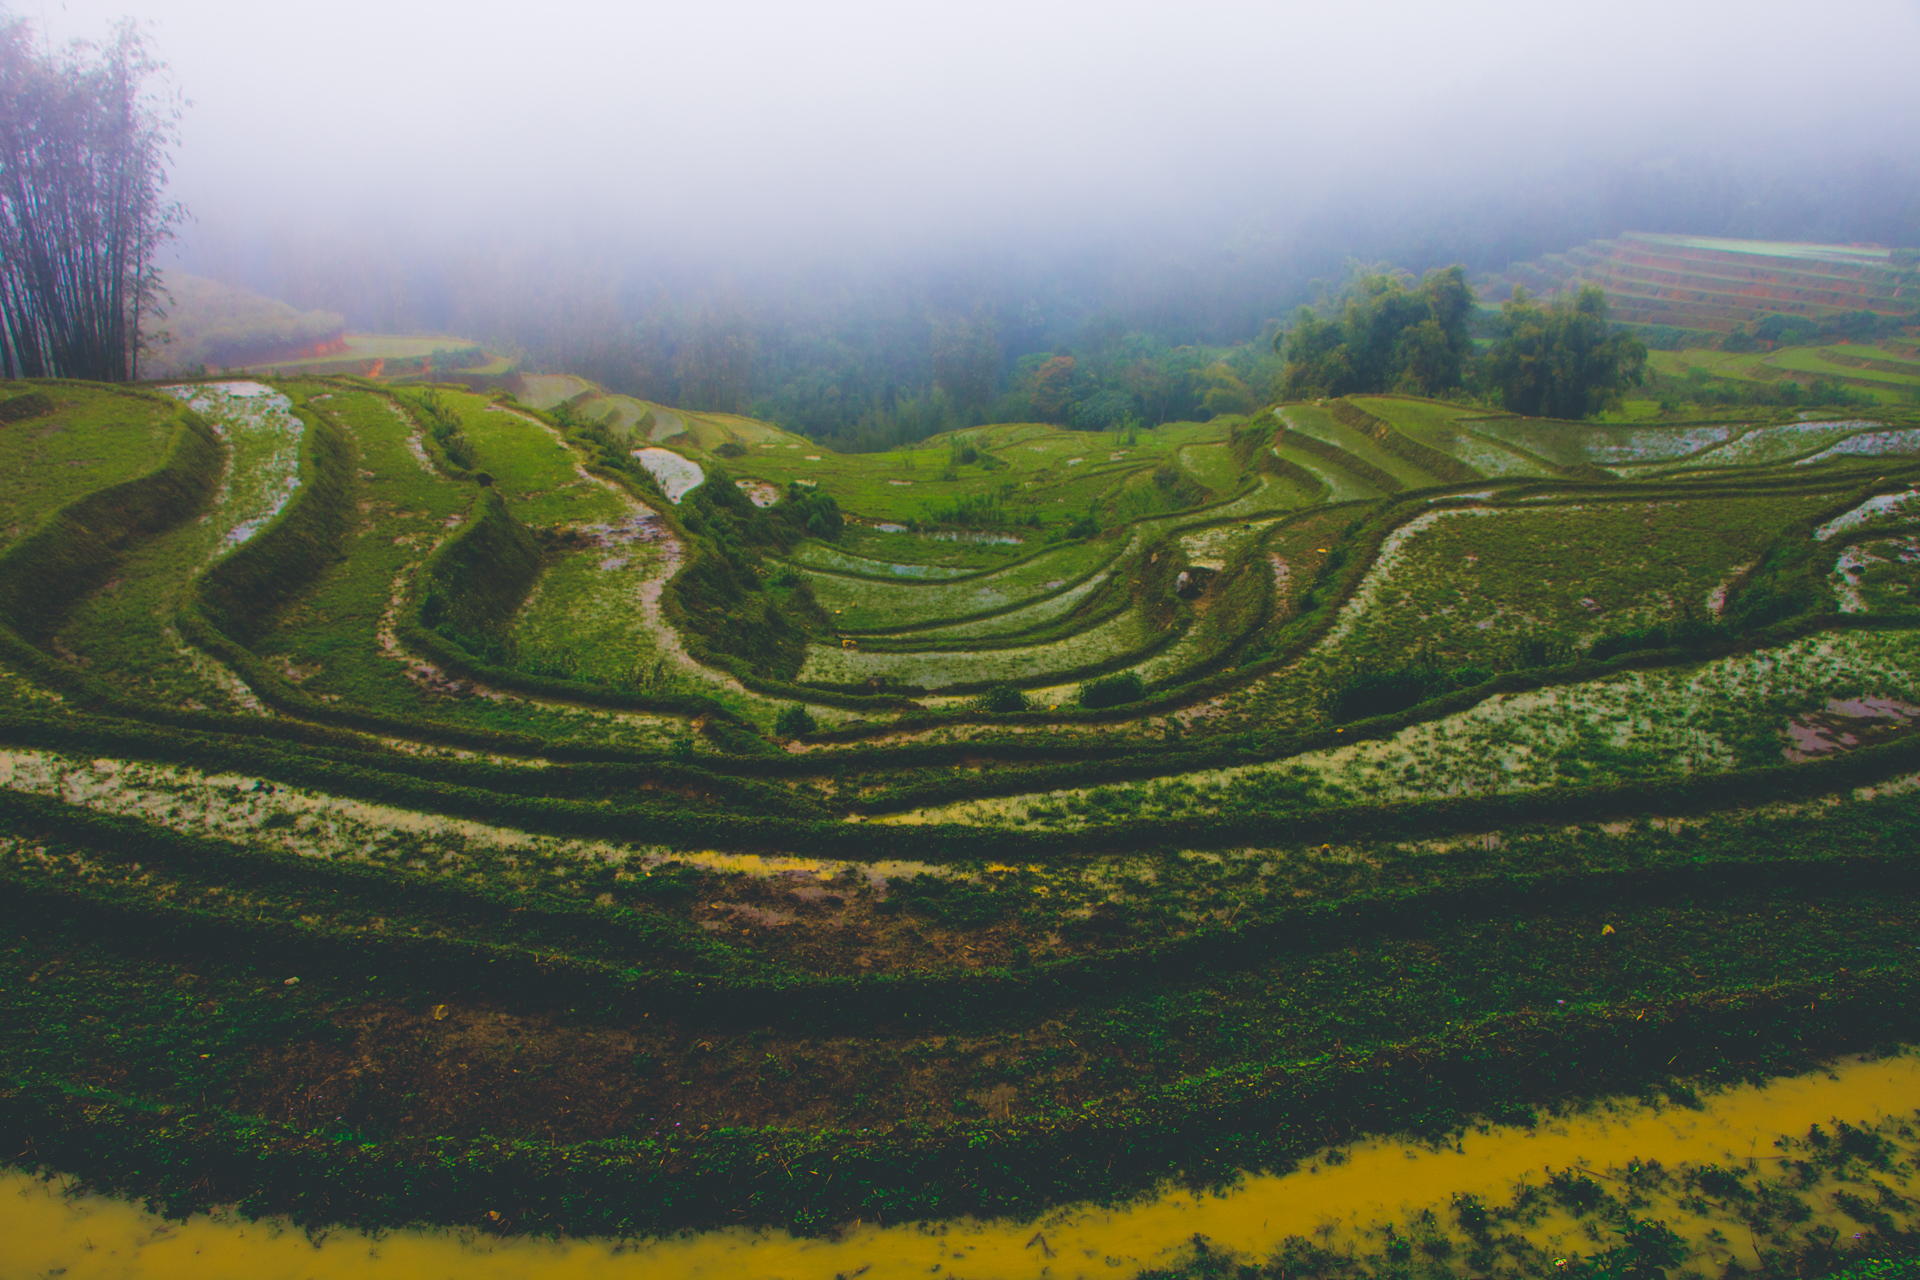 Staggered Rice Field View in Sapa, Vietnam